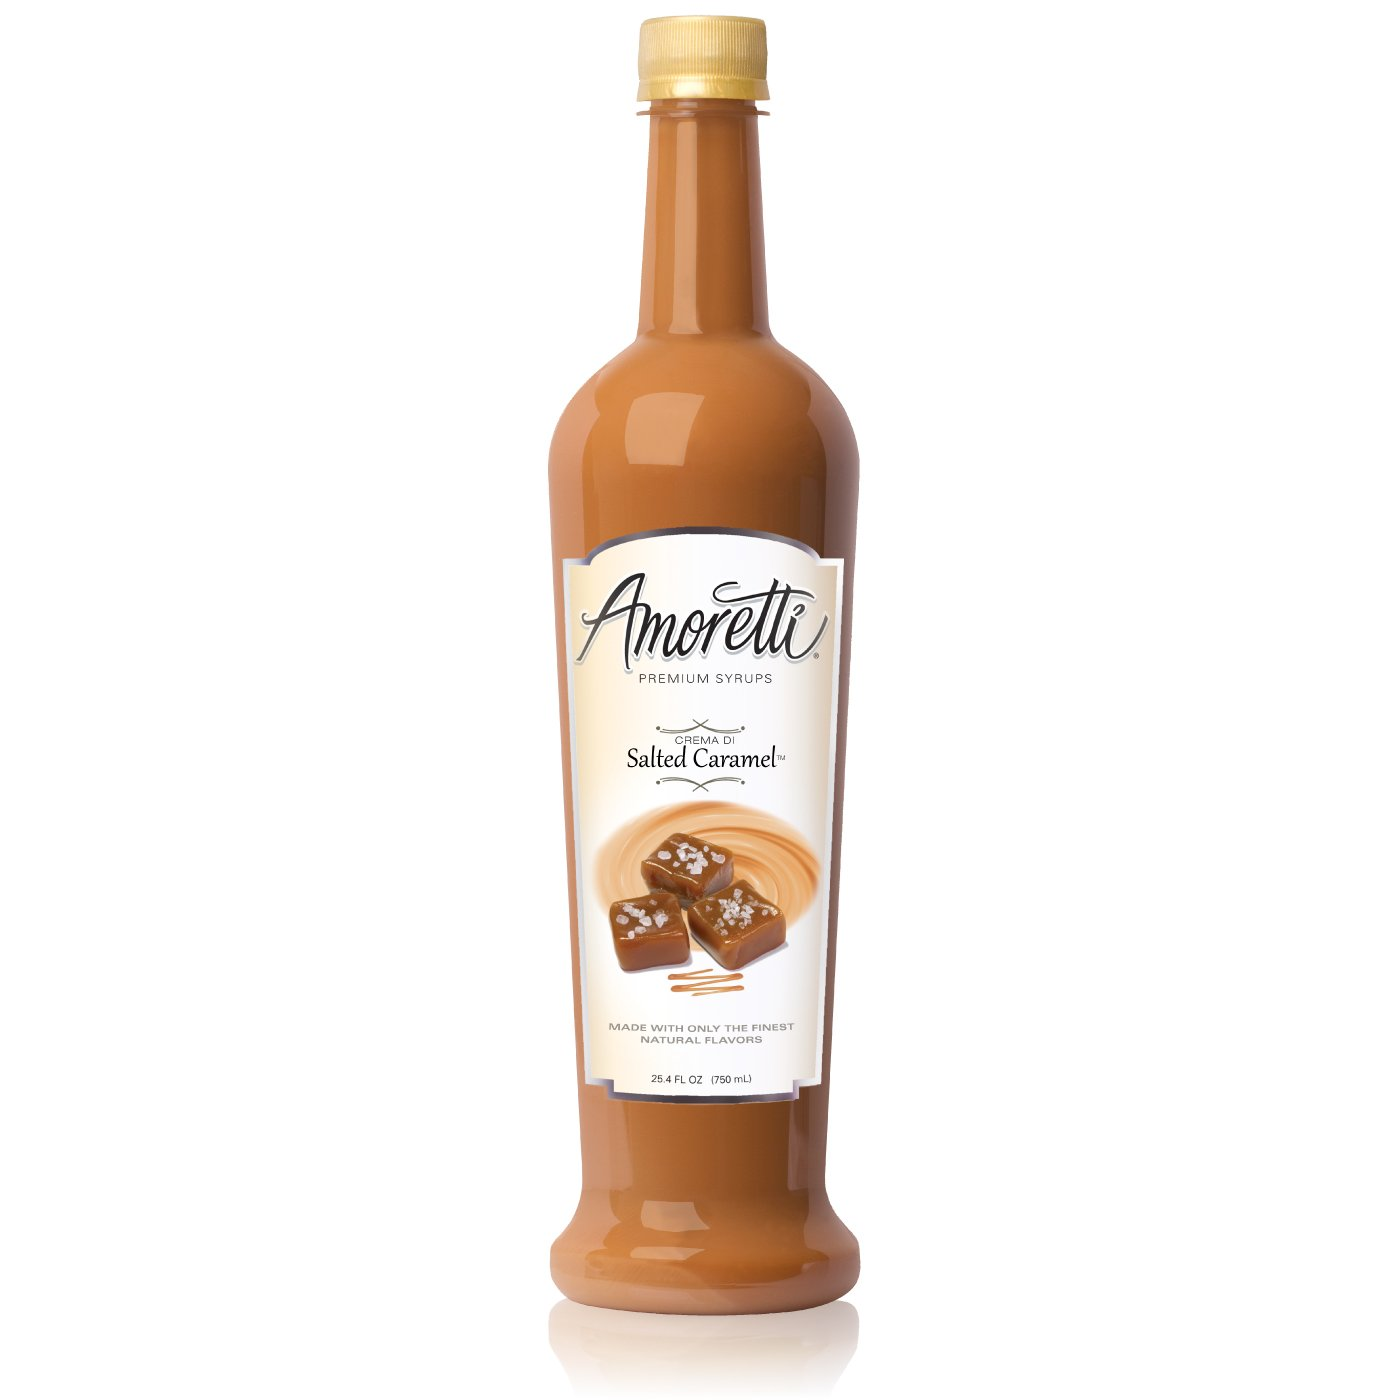 Amoretti Premium Crema Di Salted Caramel Syrup, 25.4 fluid Ounce by Amoretti (Image #1)